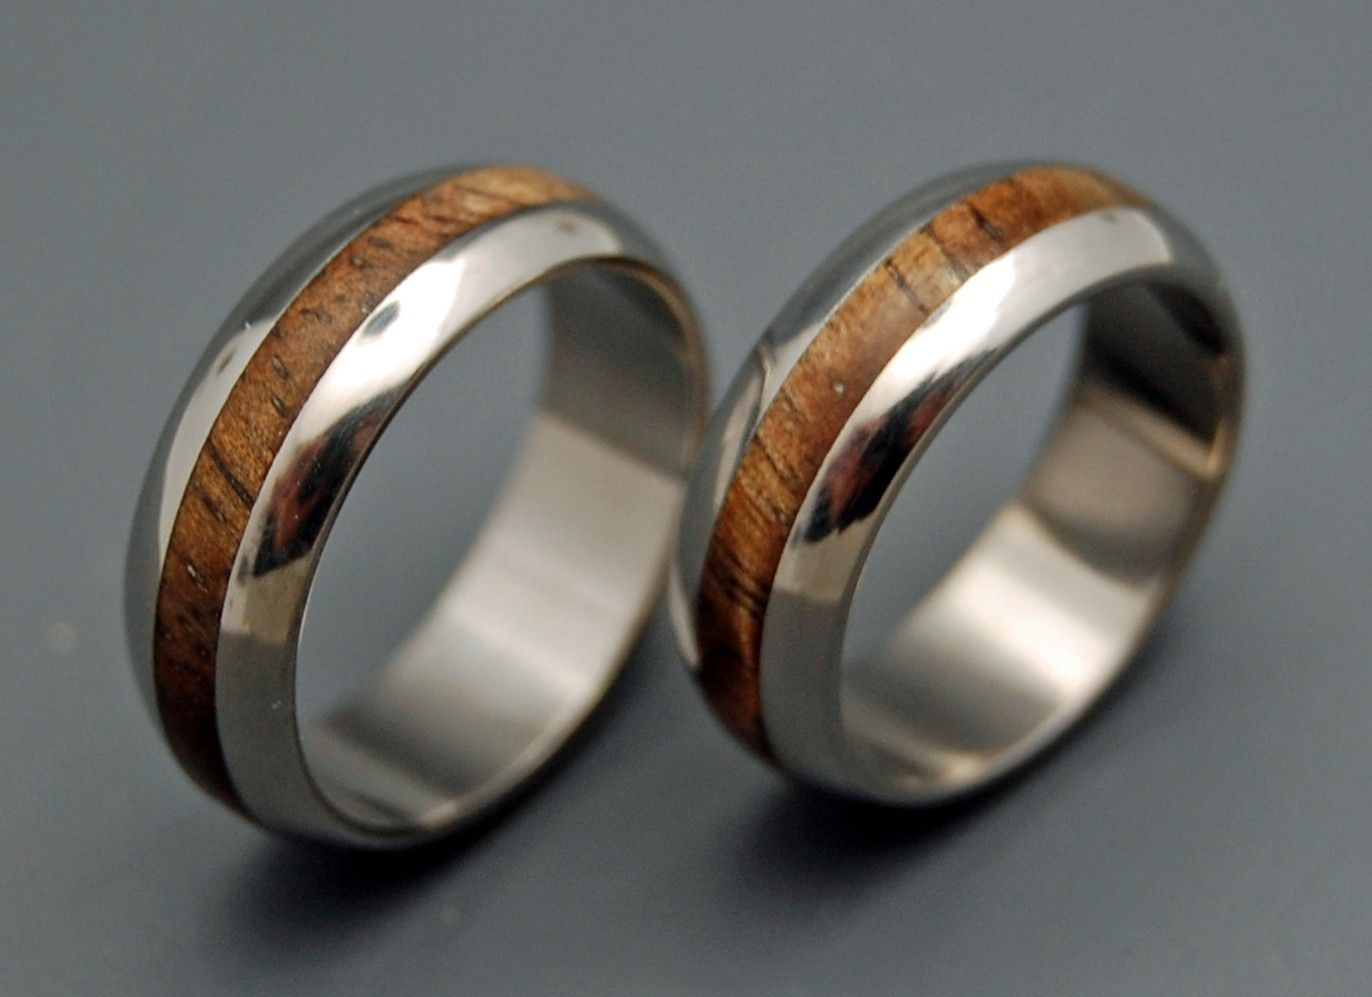 hand crafted titanium wedding rings | mahalominter & richter